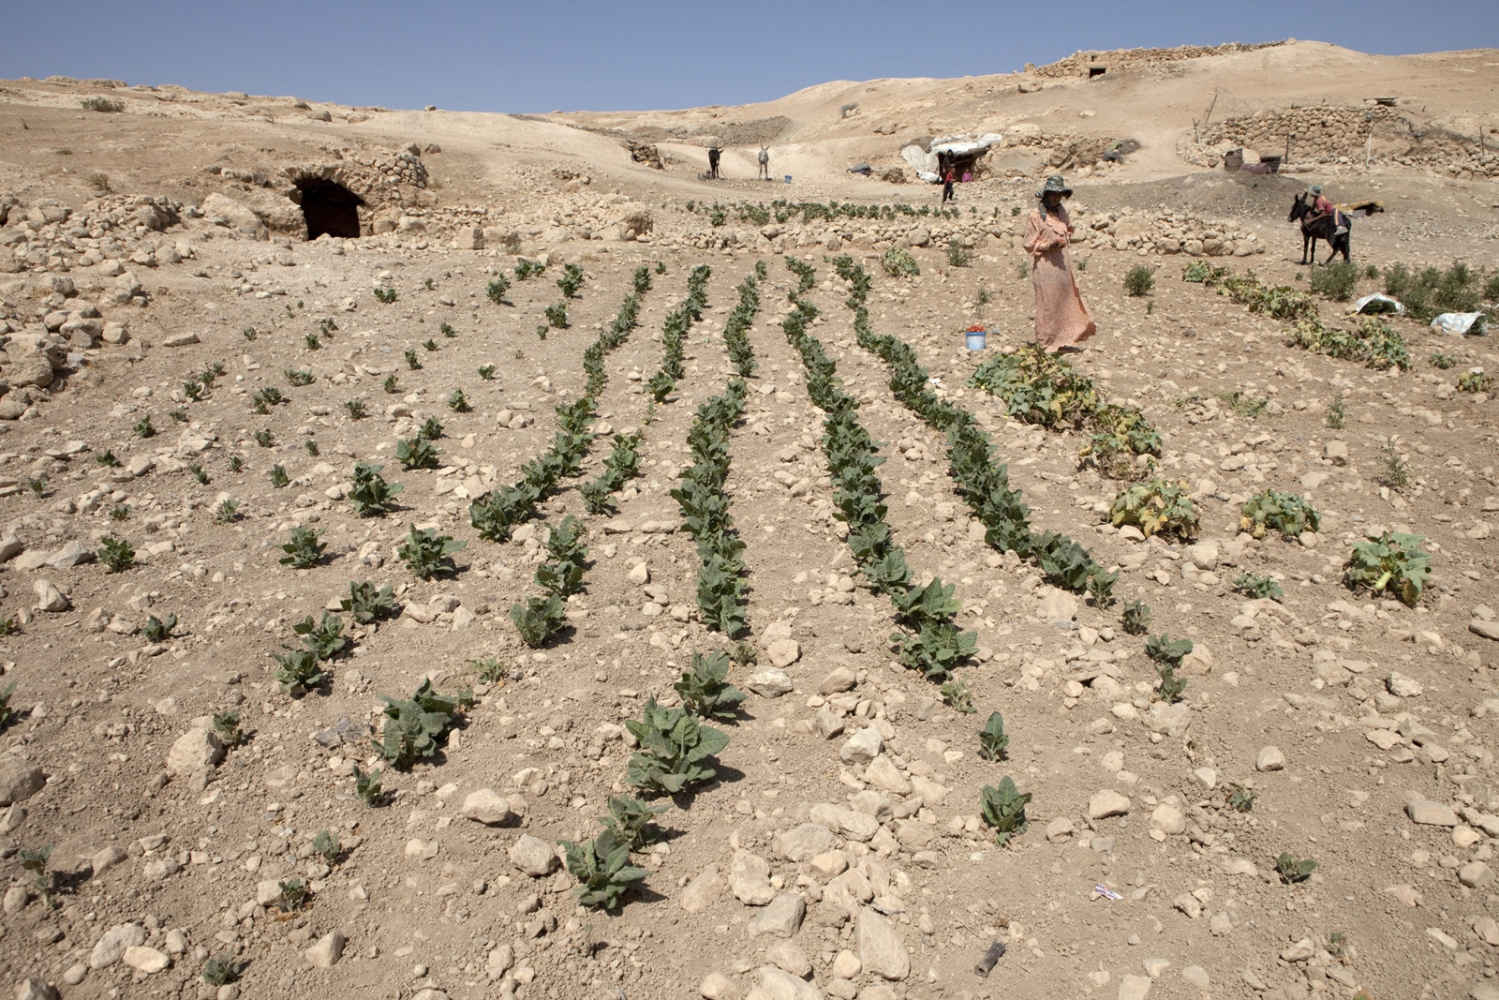 South Hebron hills. Palestinan farmers tend rows of tomato plants which mark the Green Line. The cave on the left was a family home, but has been abandoned as it sits inside Israel. Instead, they live in the cave on the right, where they say they receive less harassment from Israeli soldiers.